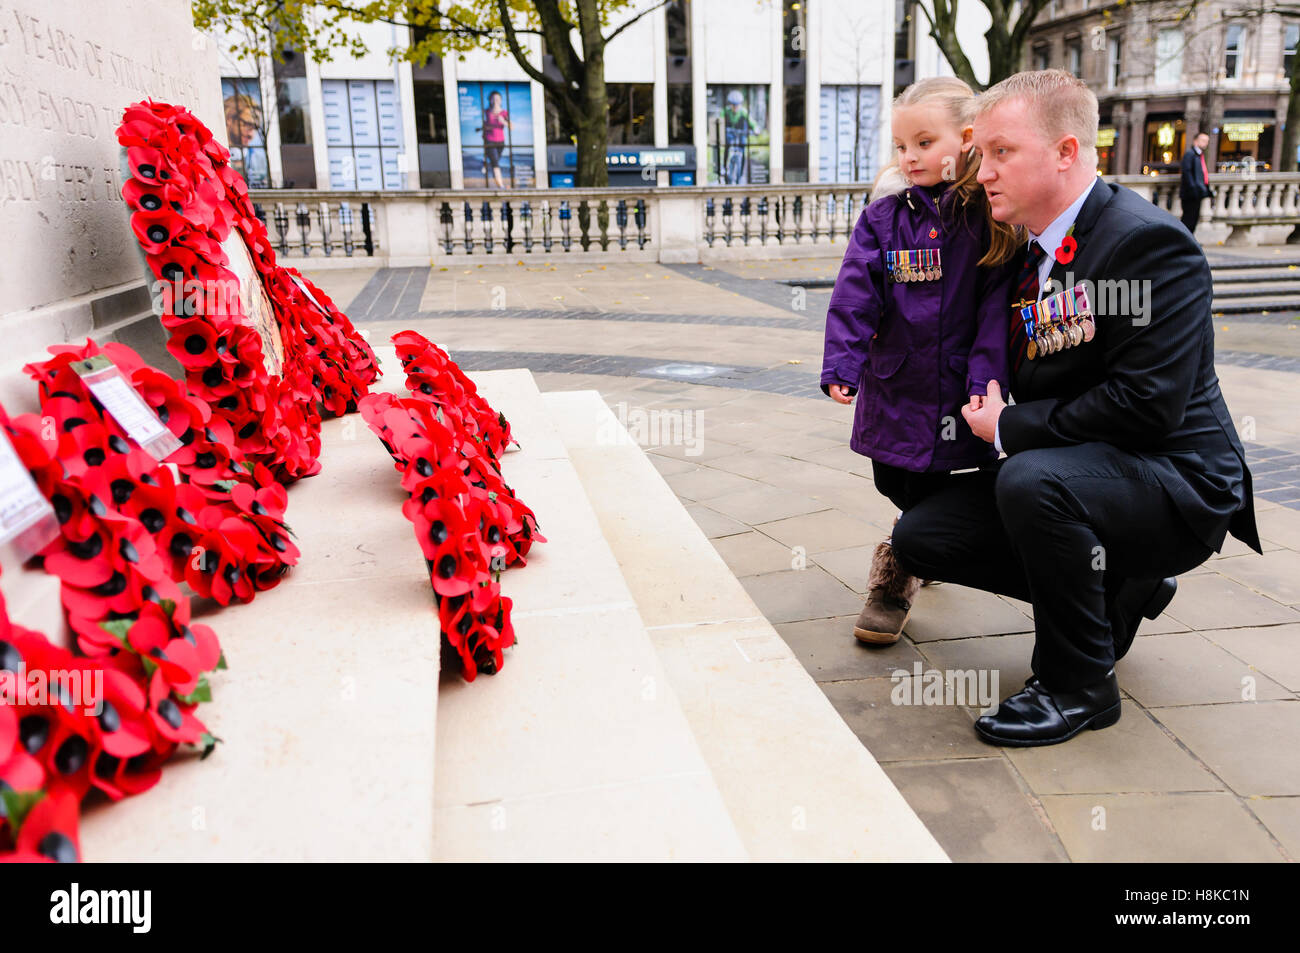 Belfast, Northern, Ireland. 13th Nov, 2016. A soldier wearing medals and his daughter look at the poppy wreaths. - Stock Image